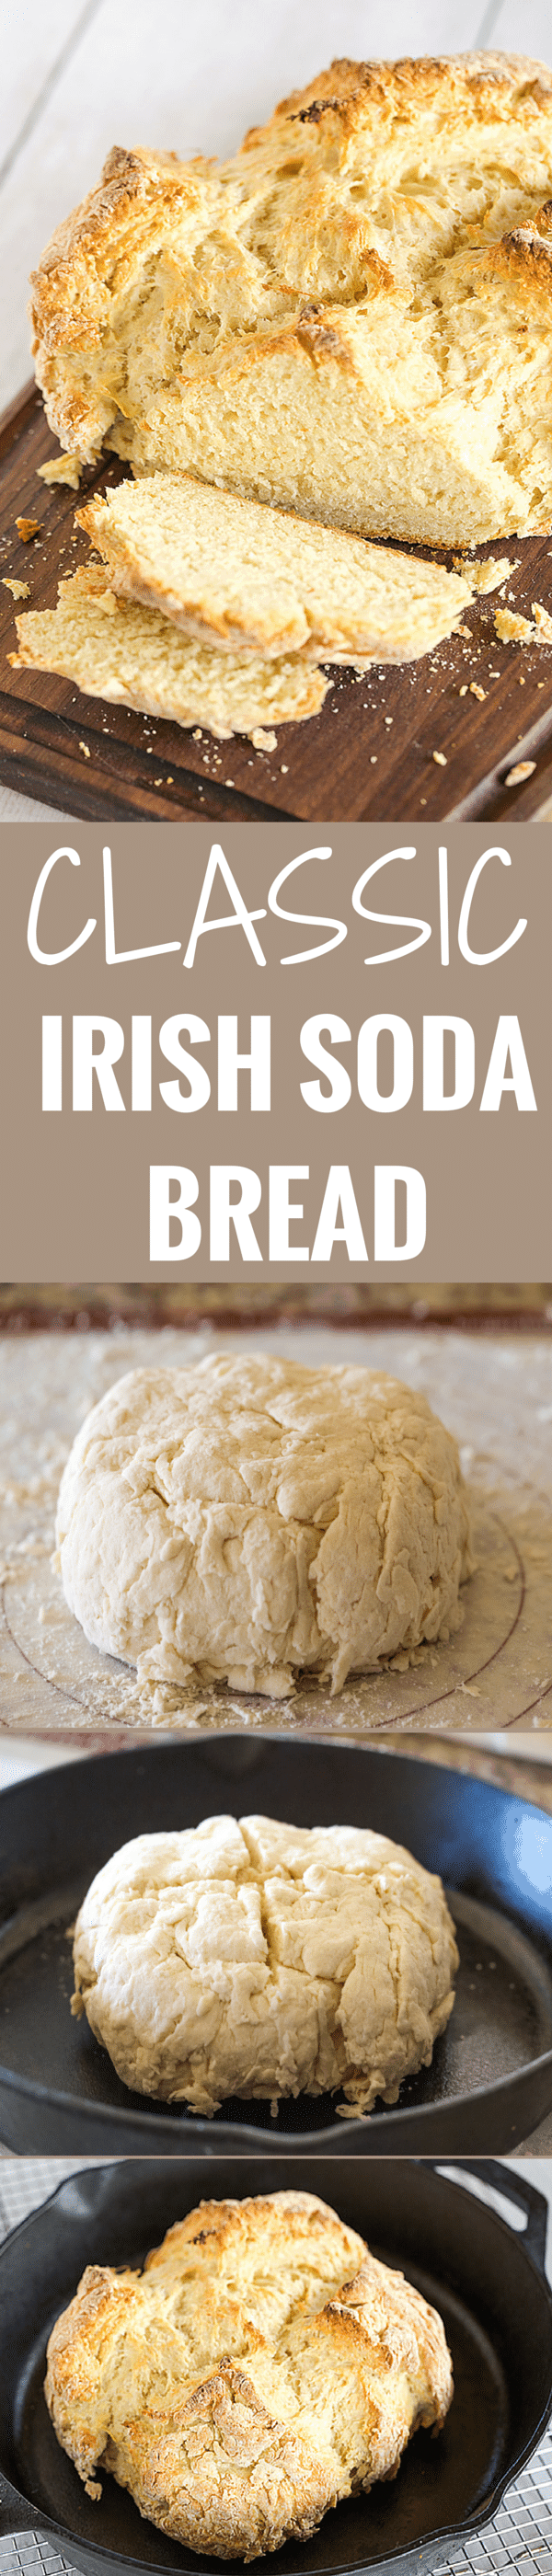 Classic Irish Soda Bread - Takes less than 10 minutes to mix together! Grab a slice warm from the oven and slather it in butter for St. Patrick's Day breakfast!